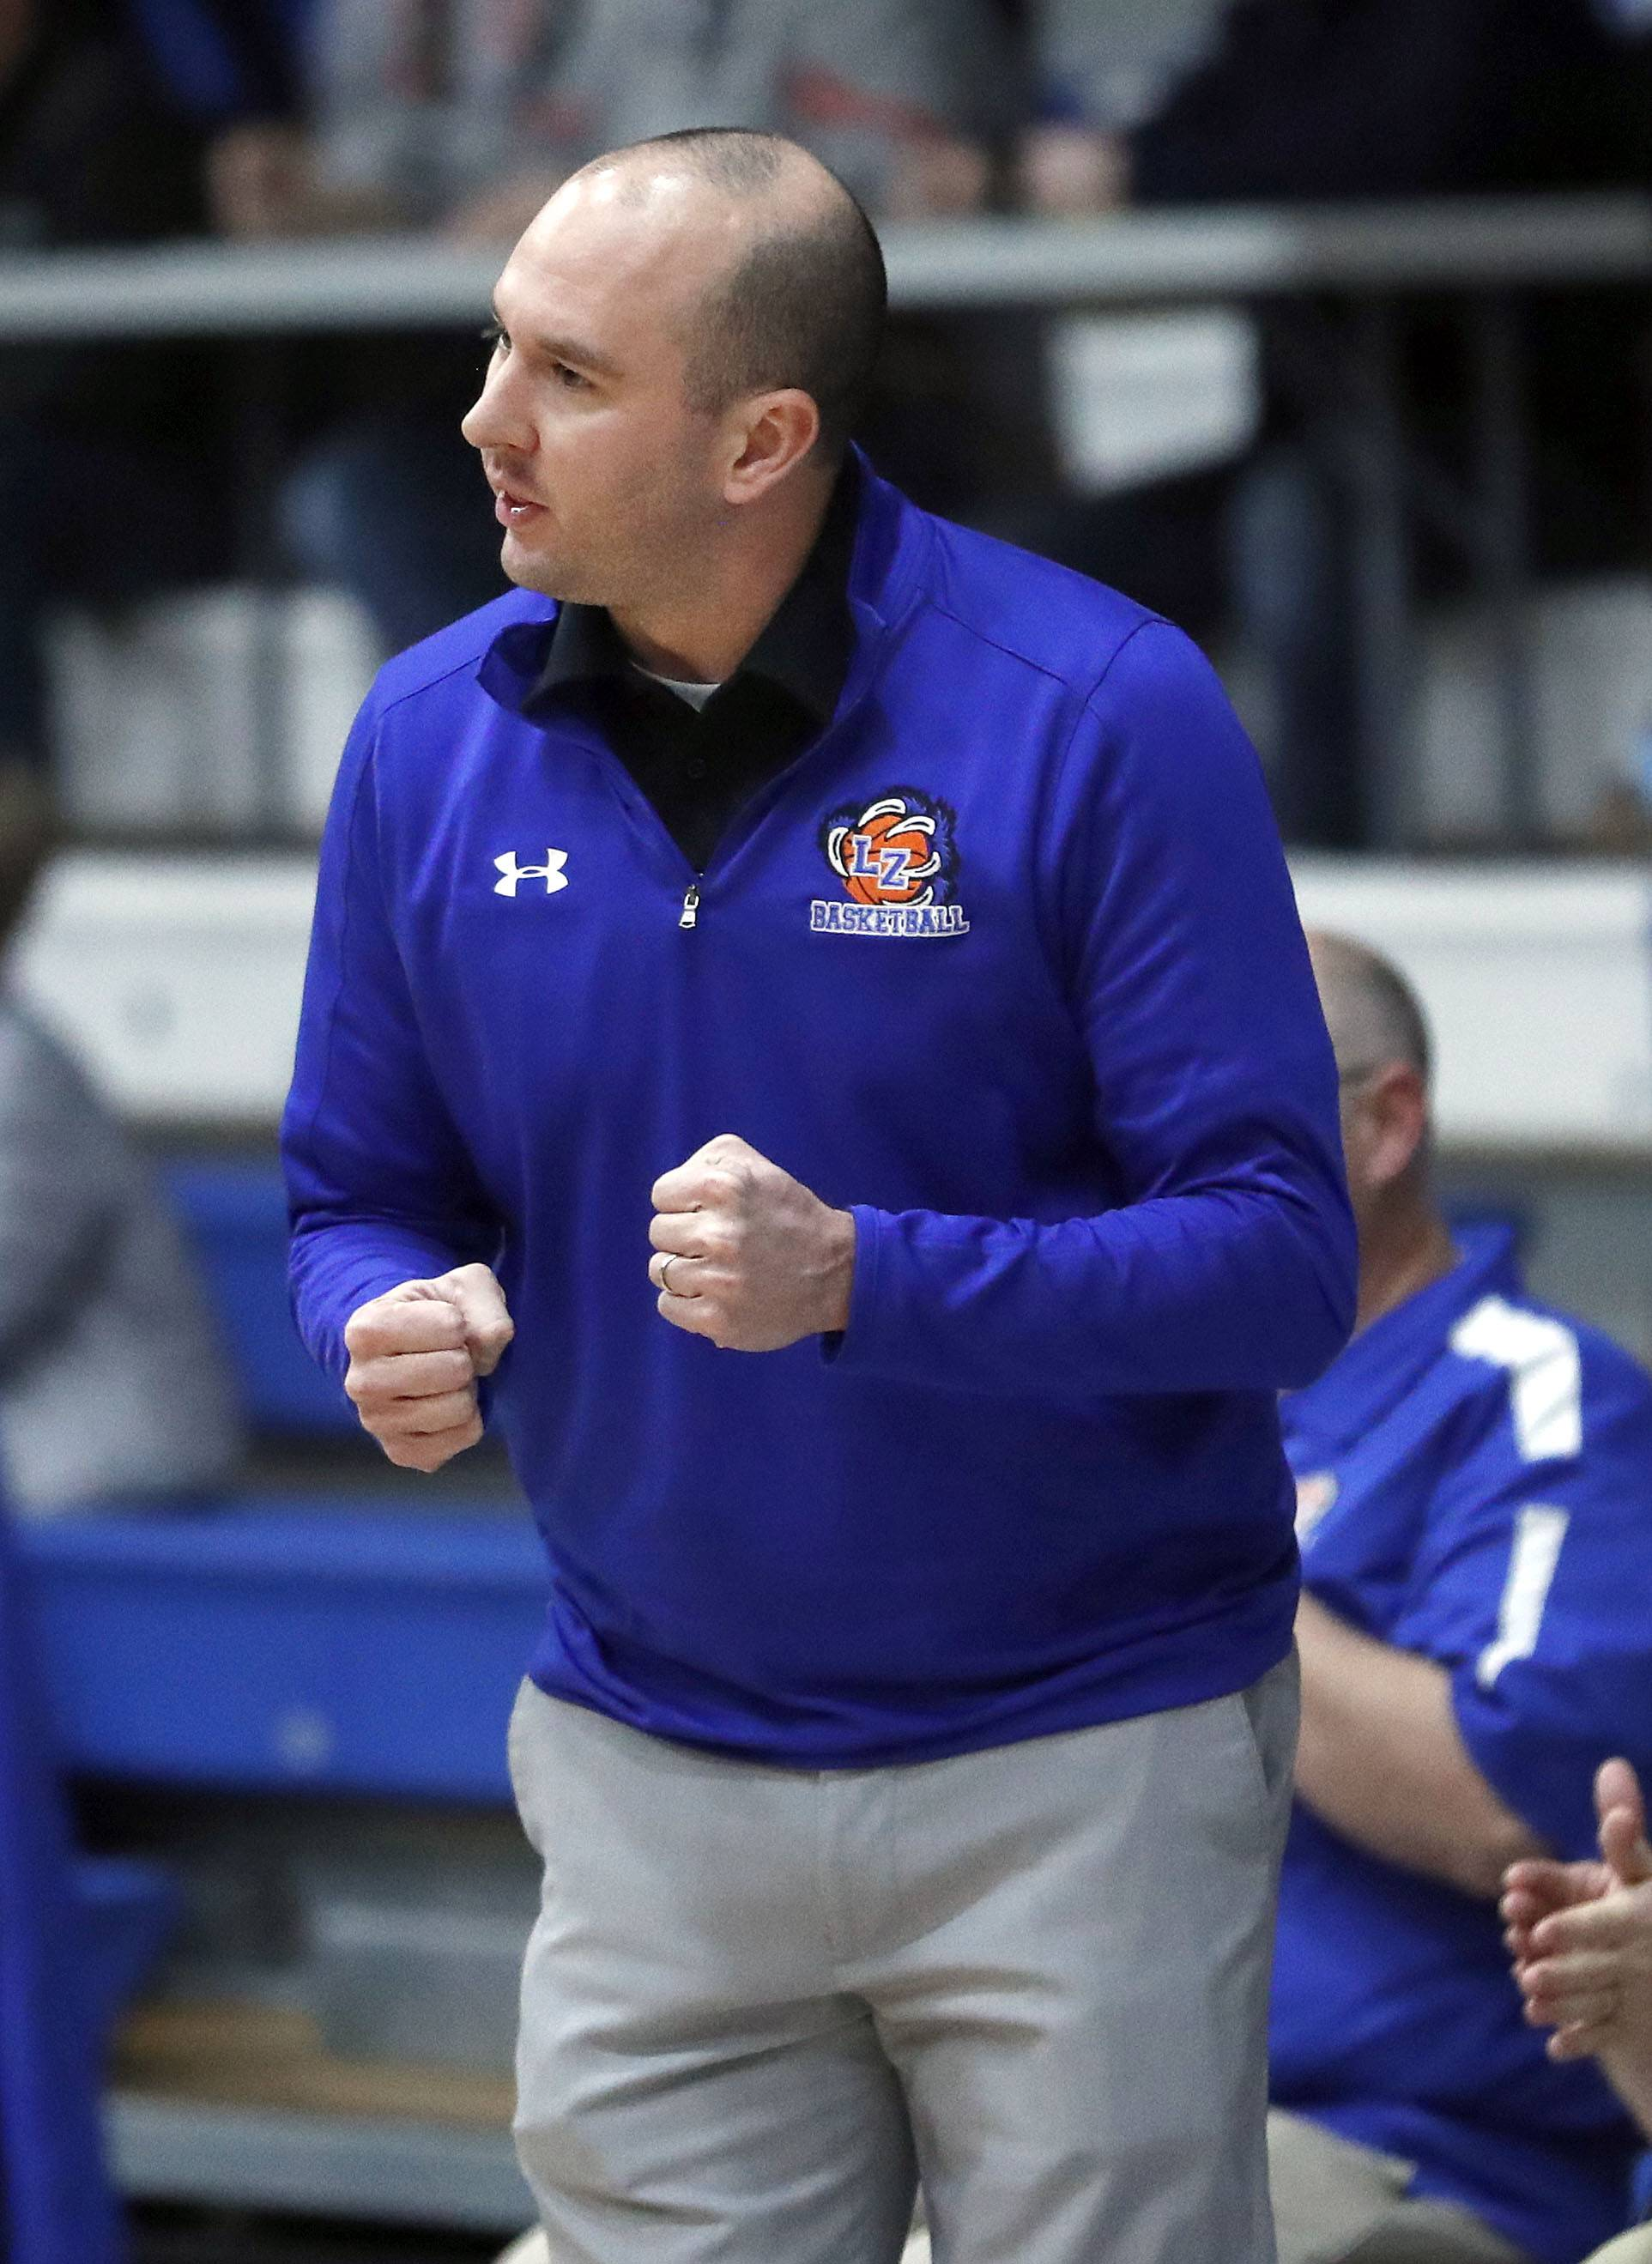 Lake Zurich head coach Terry Coughlin works the bench during their game against Mundelein Tuesday night in Lake Zurich.